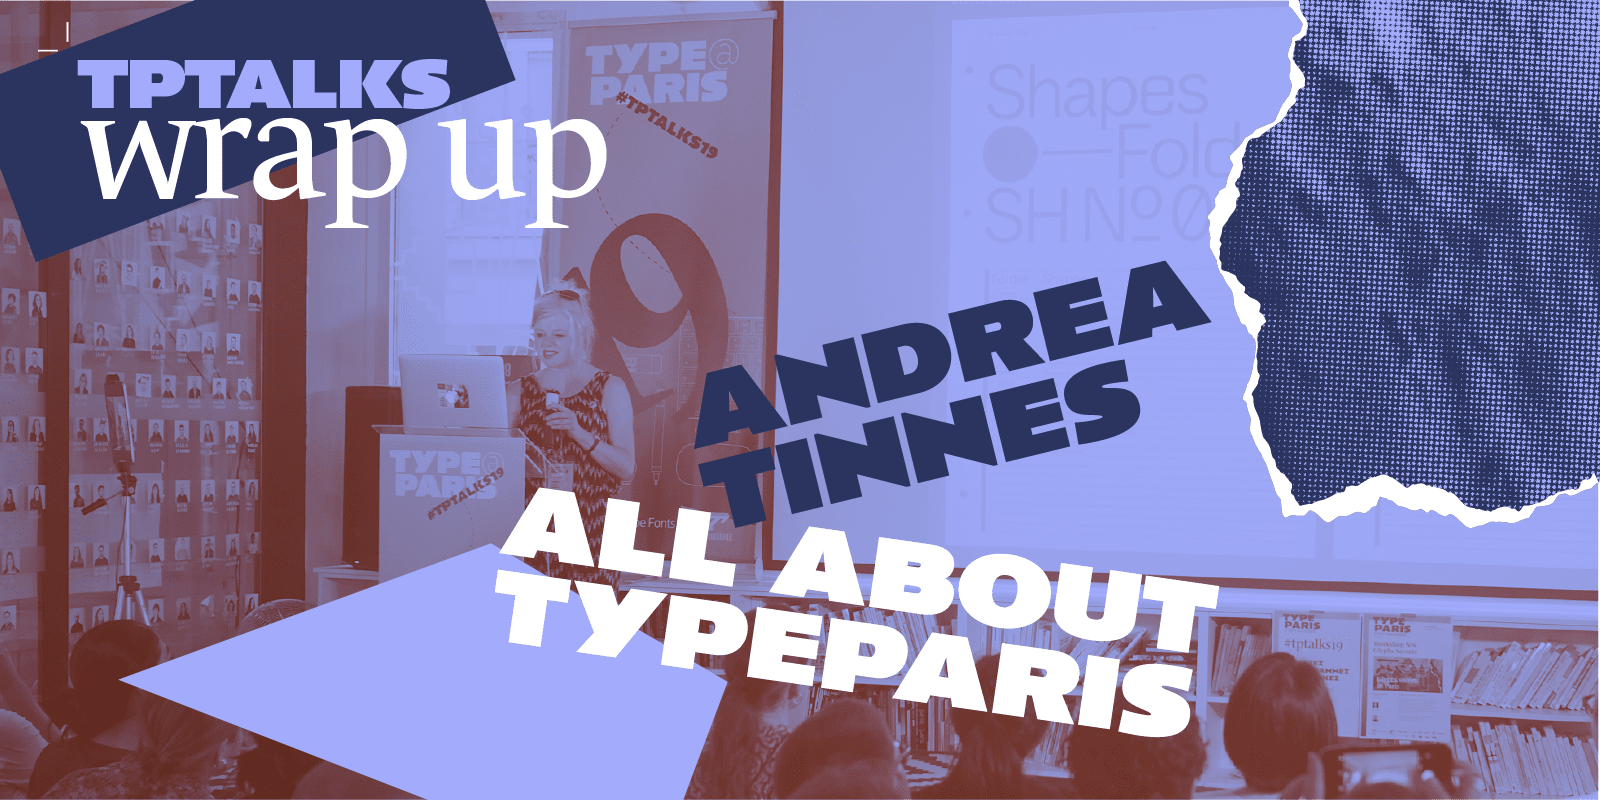 2019_typeparis19_tptalks_tinnes+typeparis